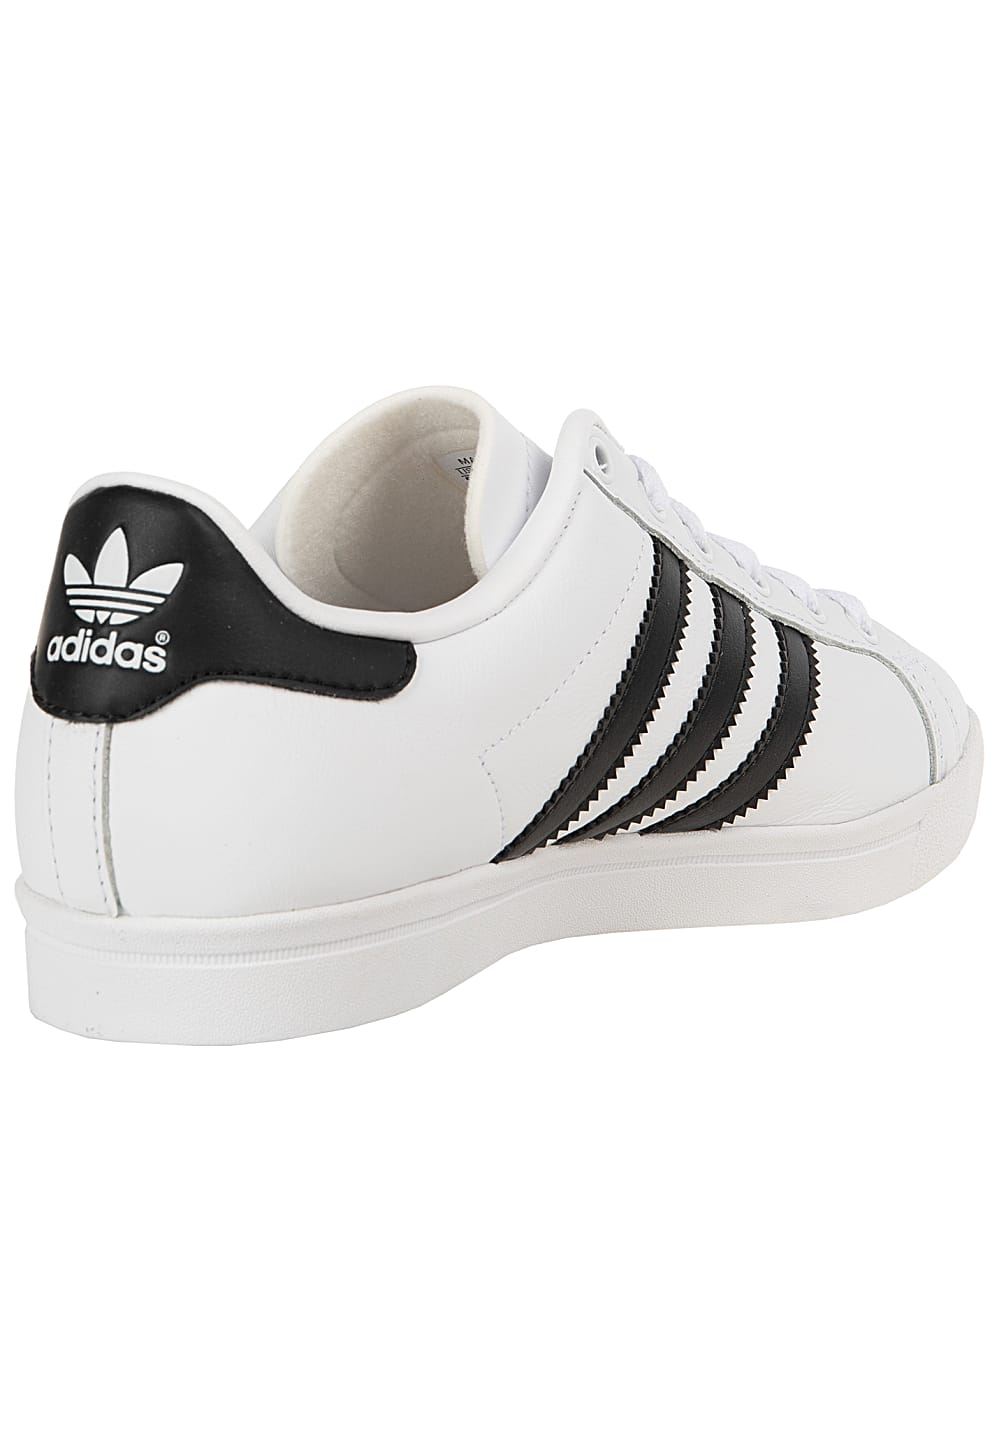 adidas Originals Coast Star Sneaker Weiß